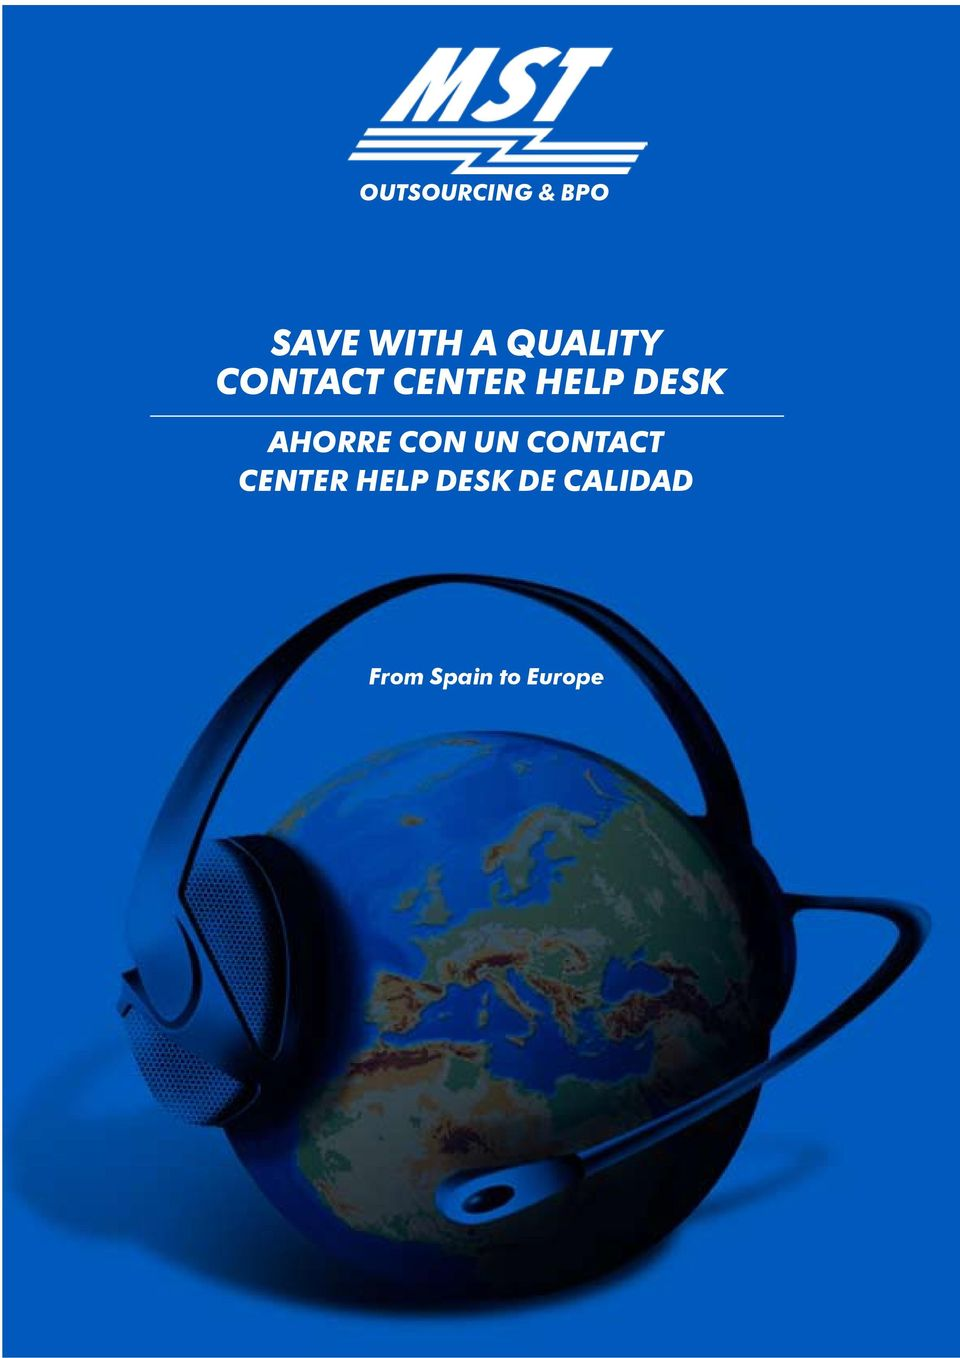 AHORRE CON UN CONTACT CENTER HELP